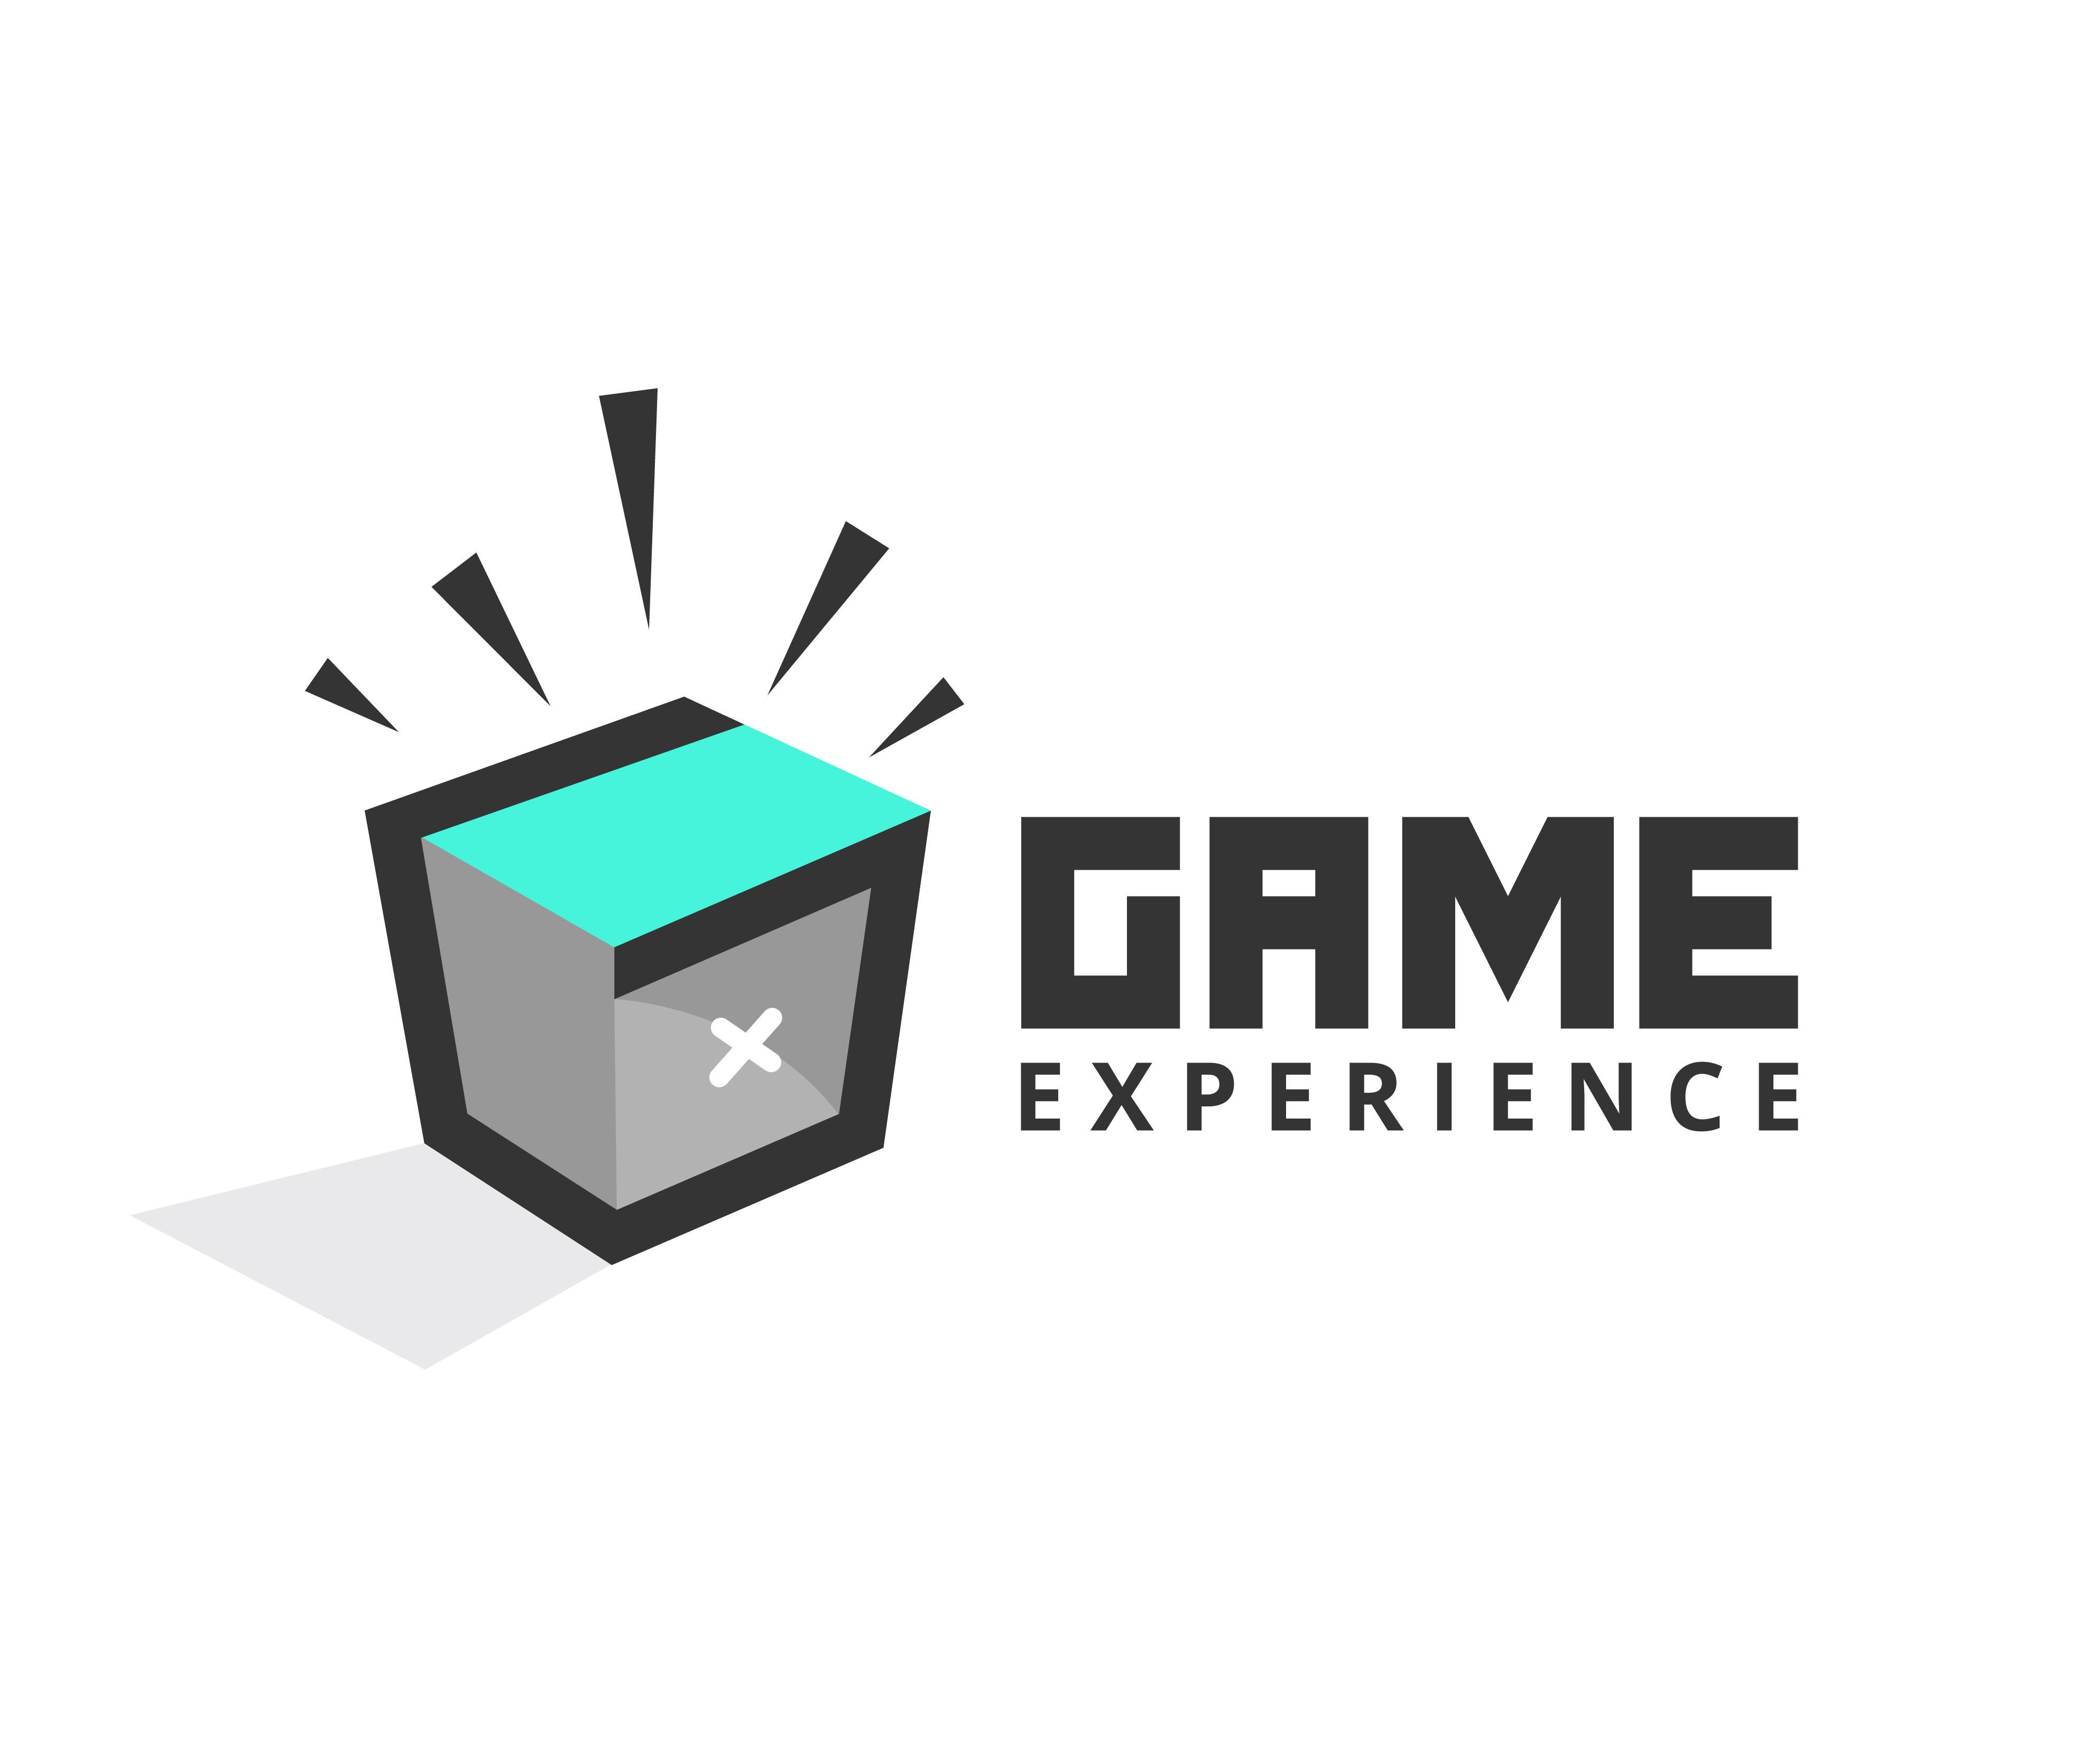 Summer Program Game Experience: Video Game Development